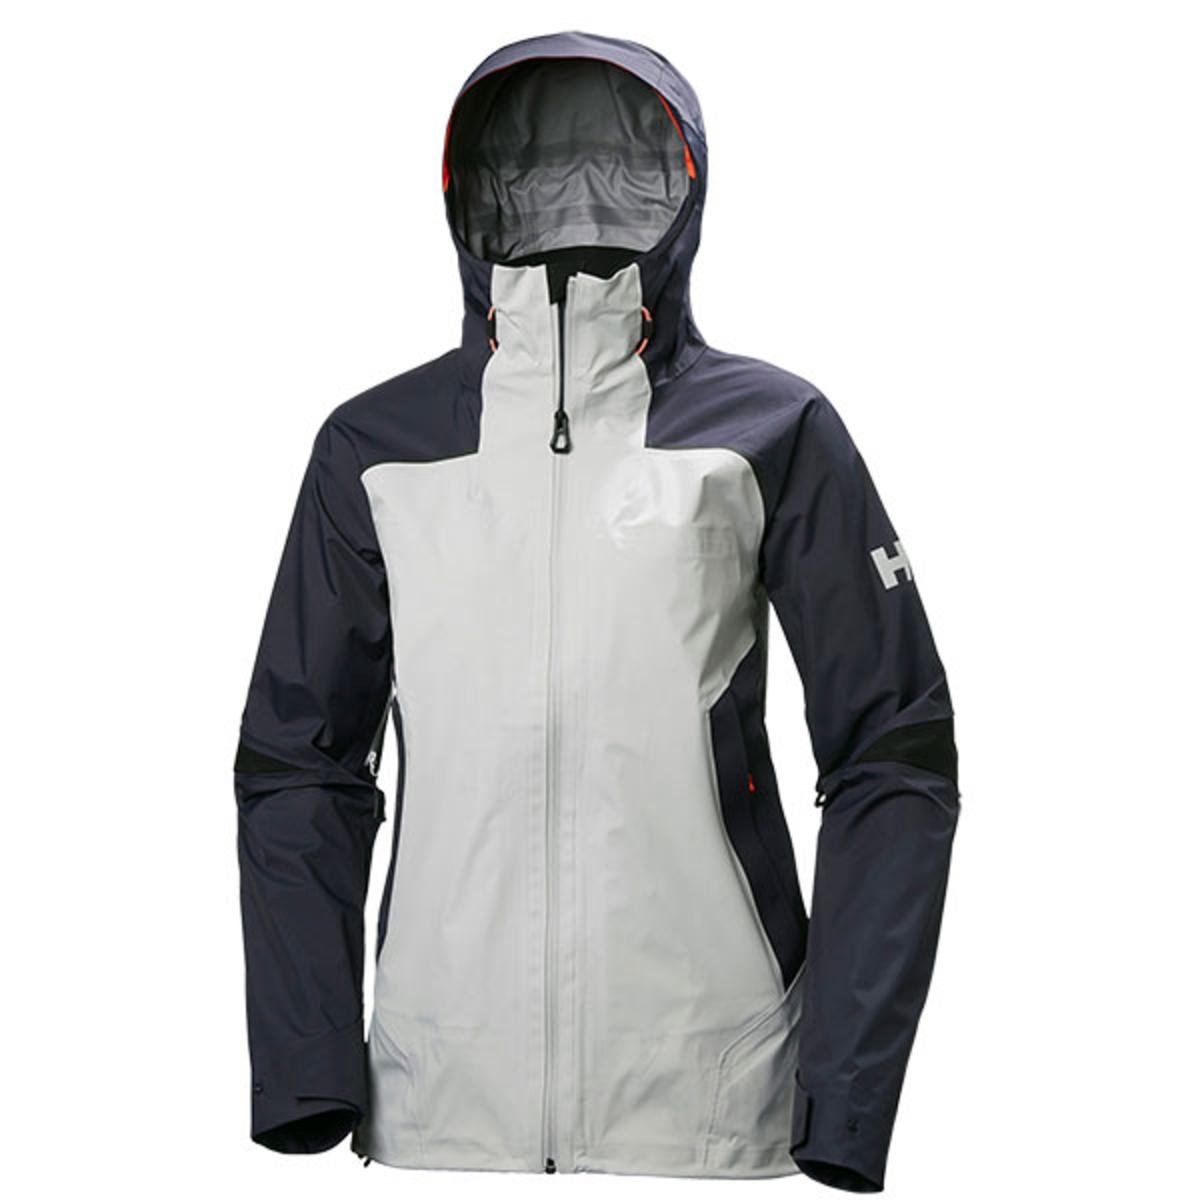 db8d223082a Helly Hansen Women s Odin 9 Worlds Jacket - The Warming Store